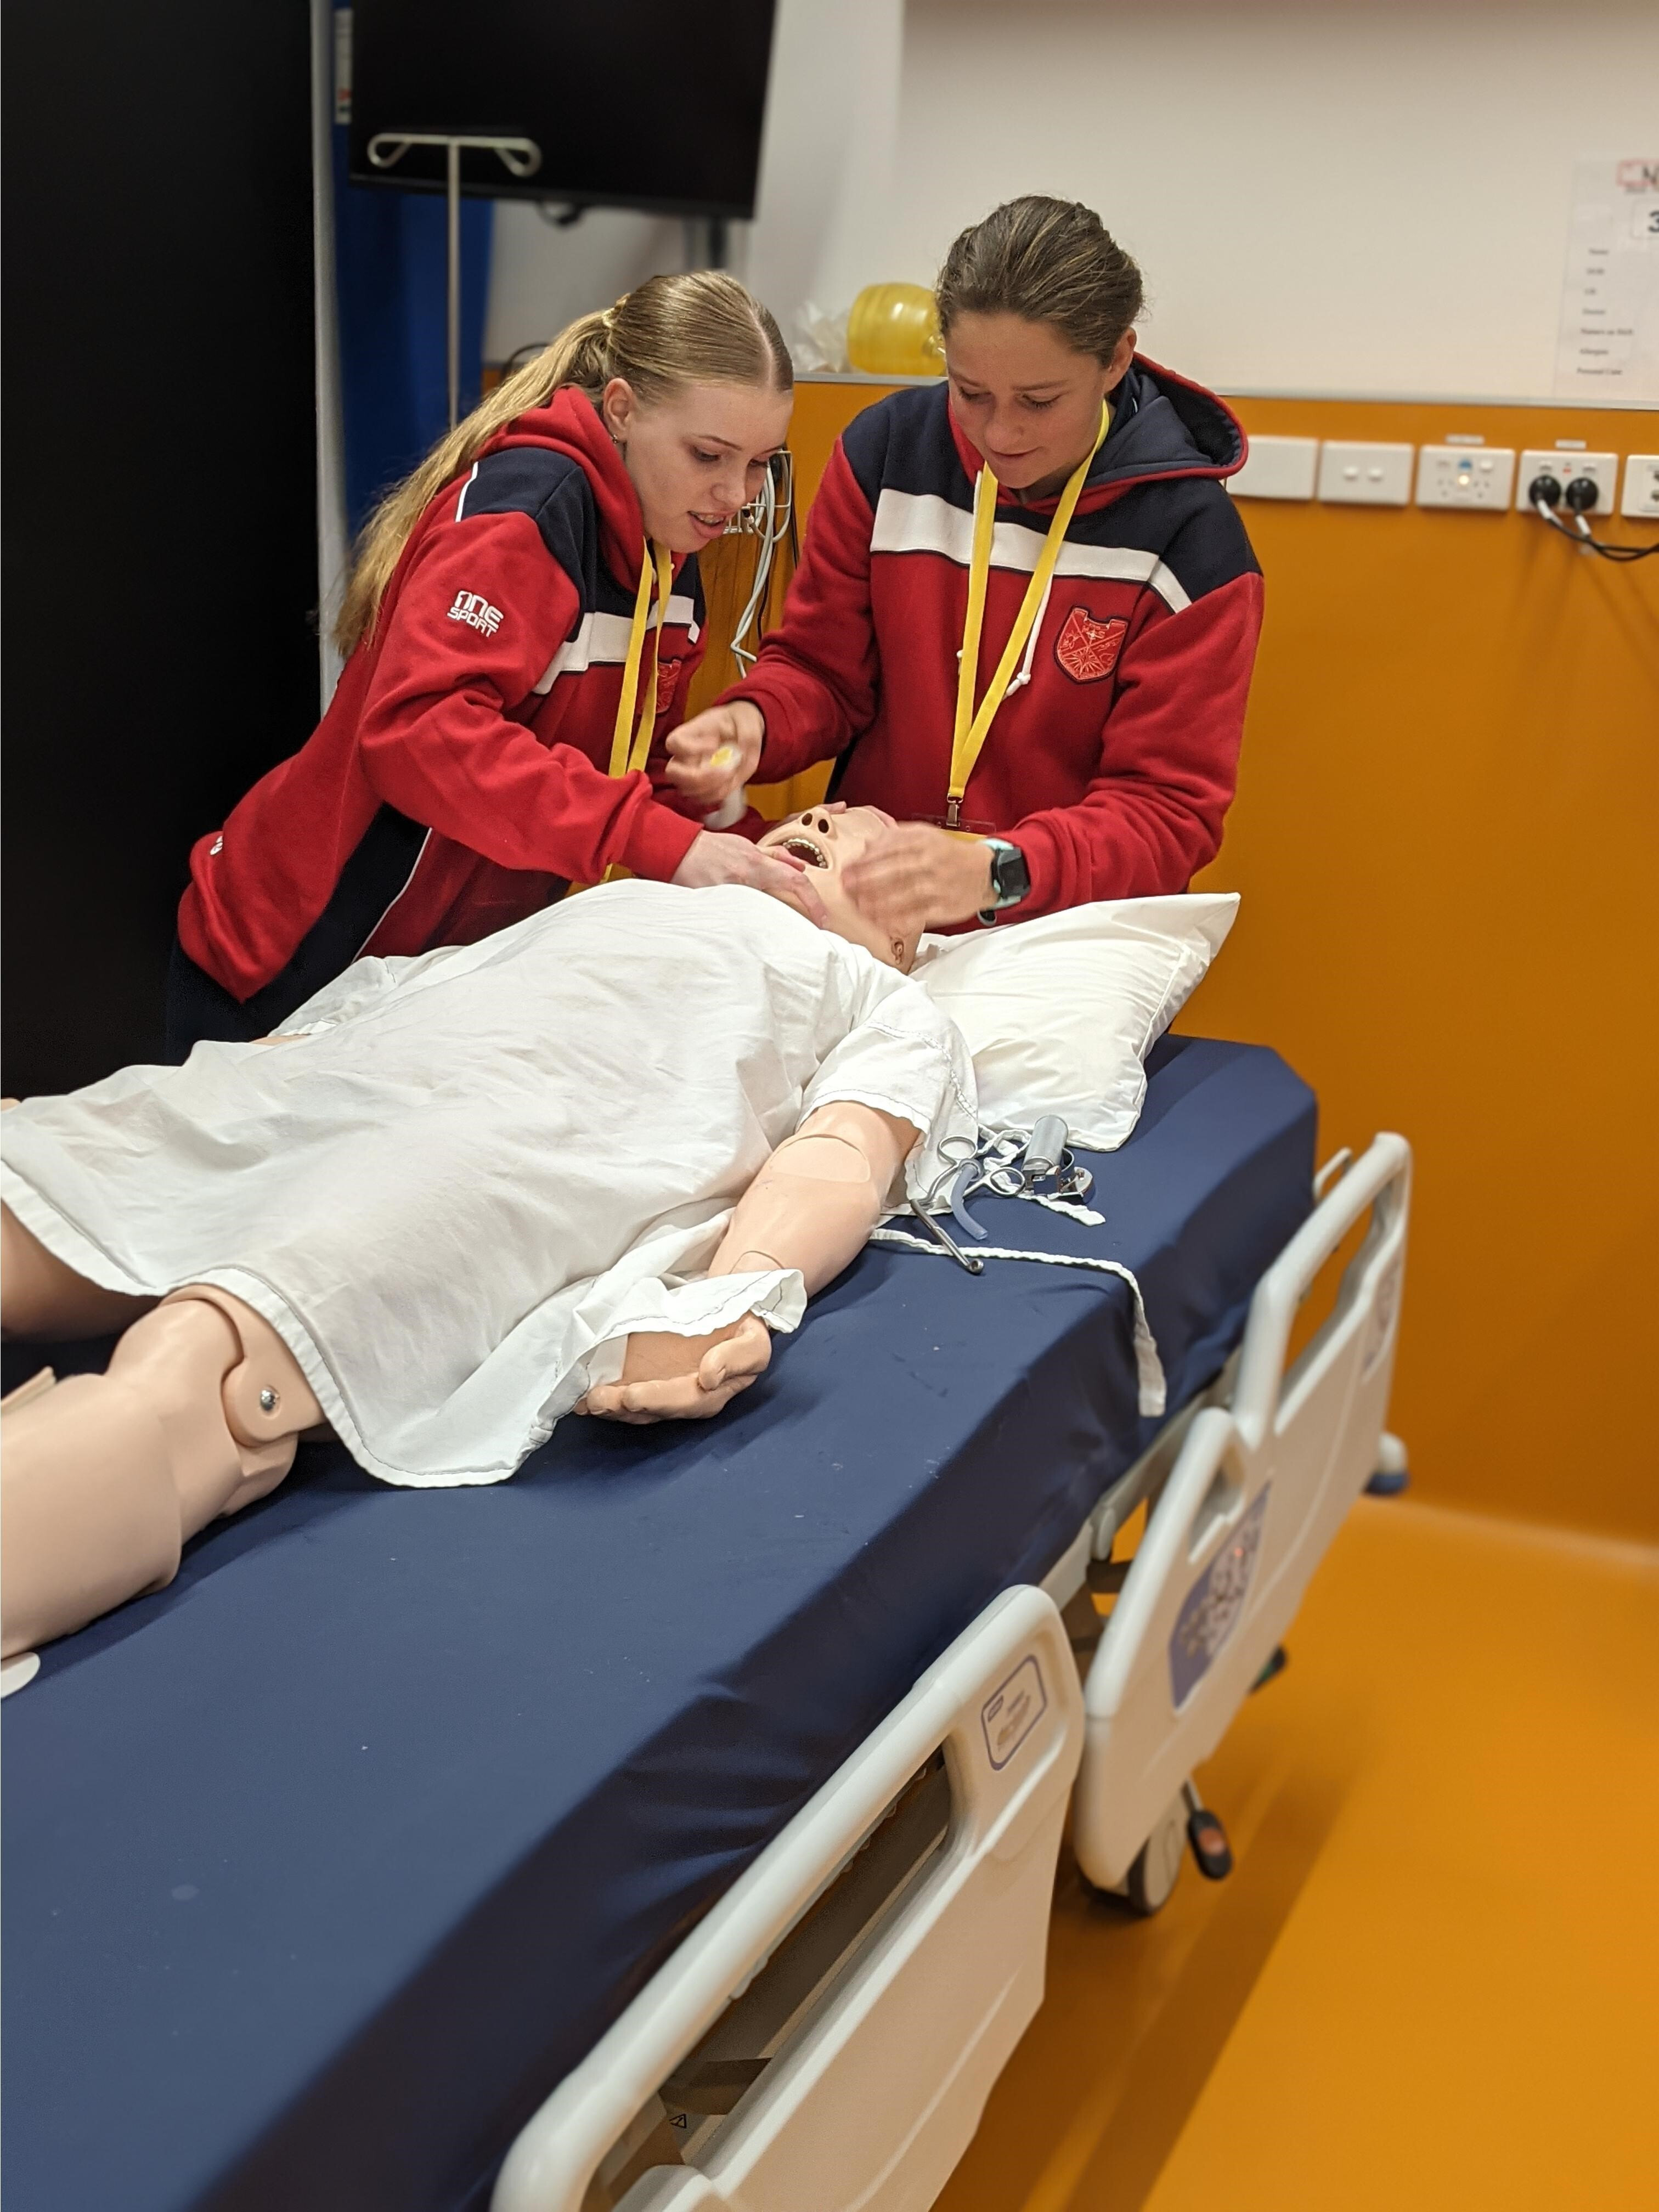 Ruby Carr and Lottie McMahon successfully resusitate a patient at the recent University Promotion Day in Canberra.